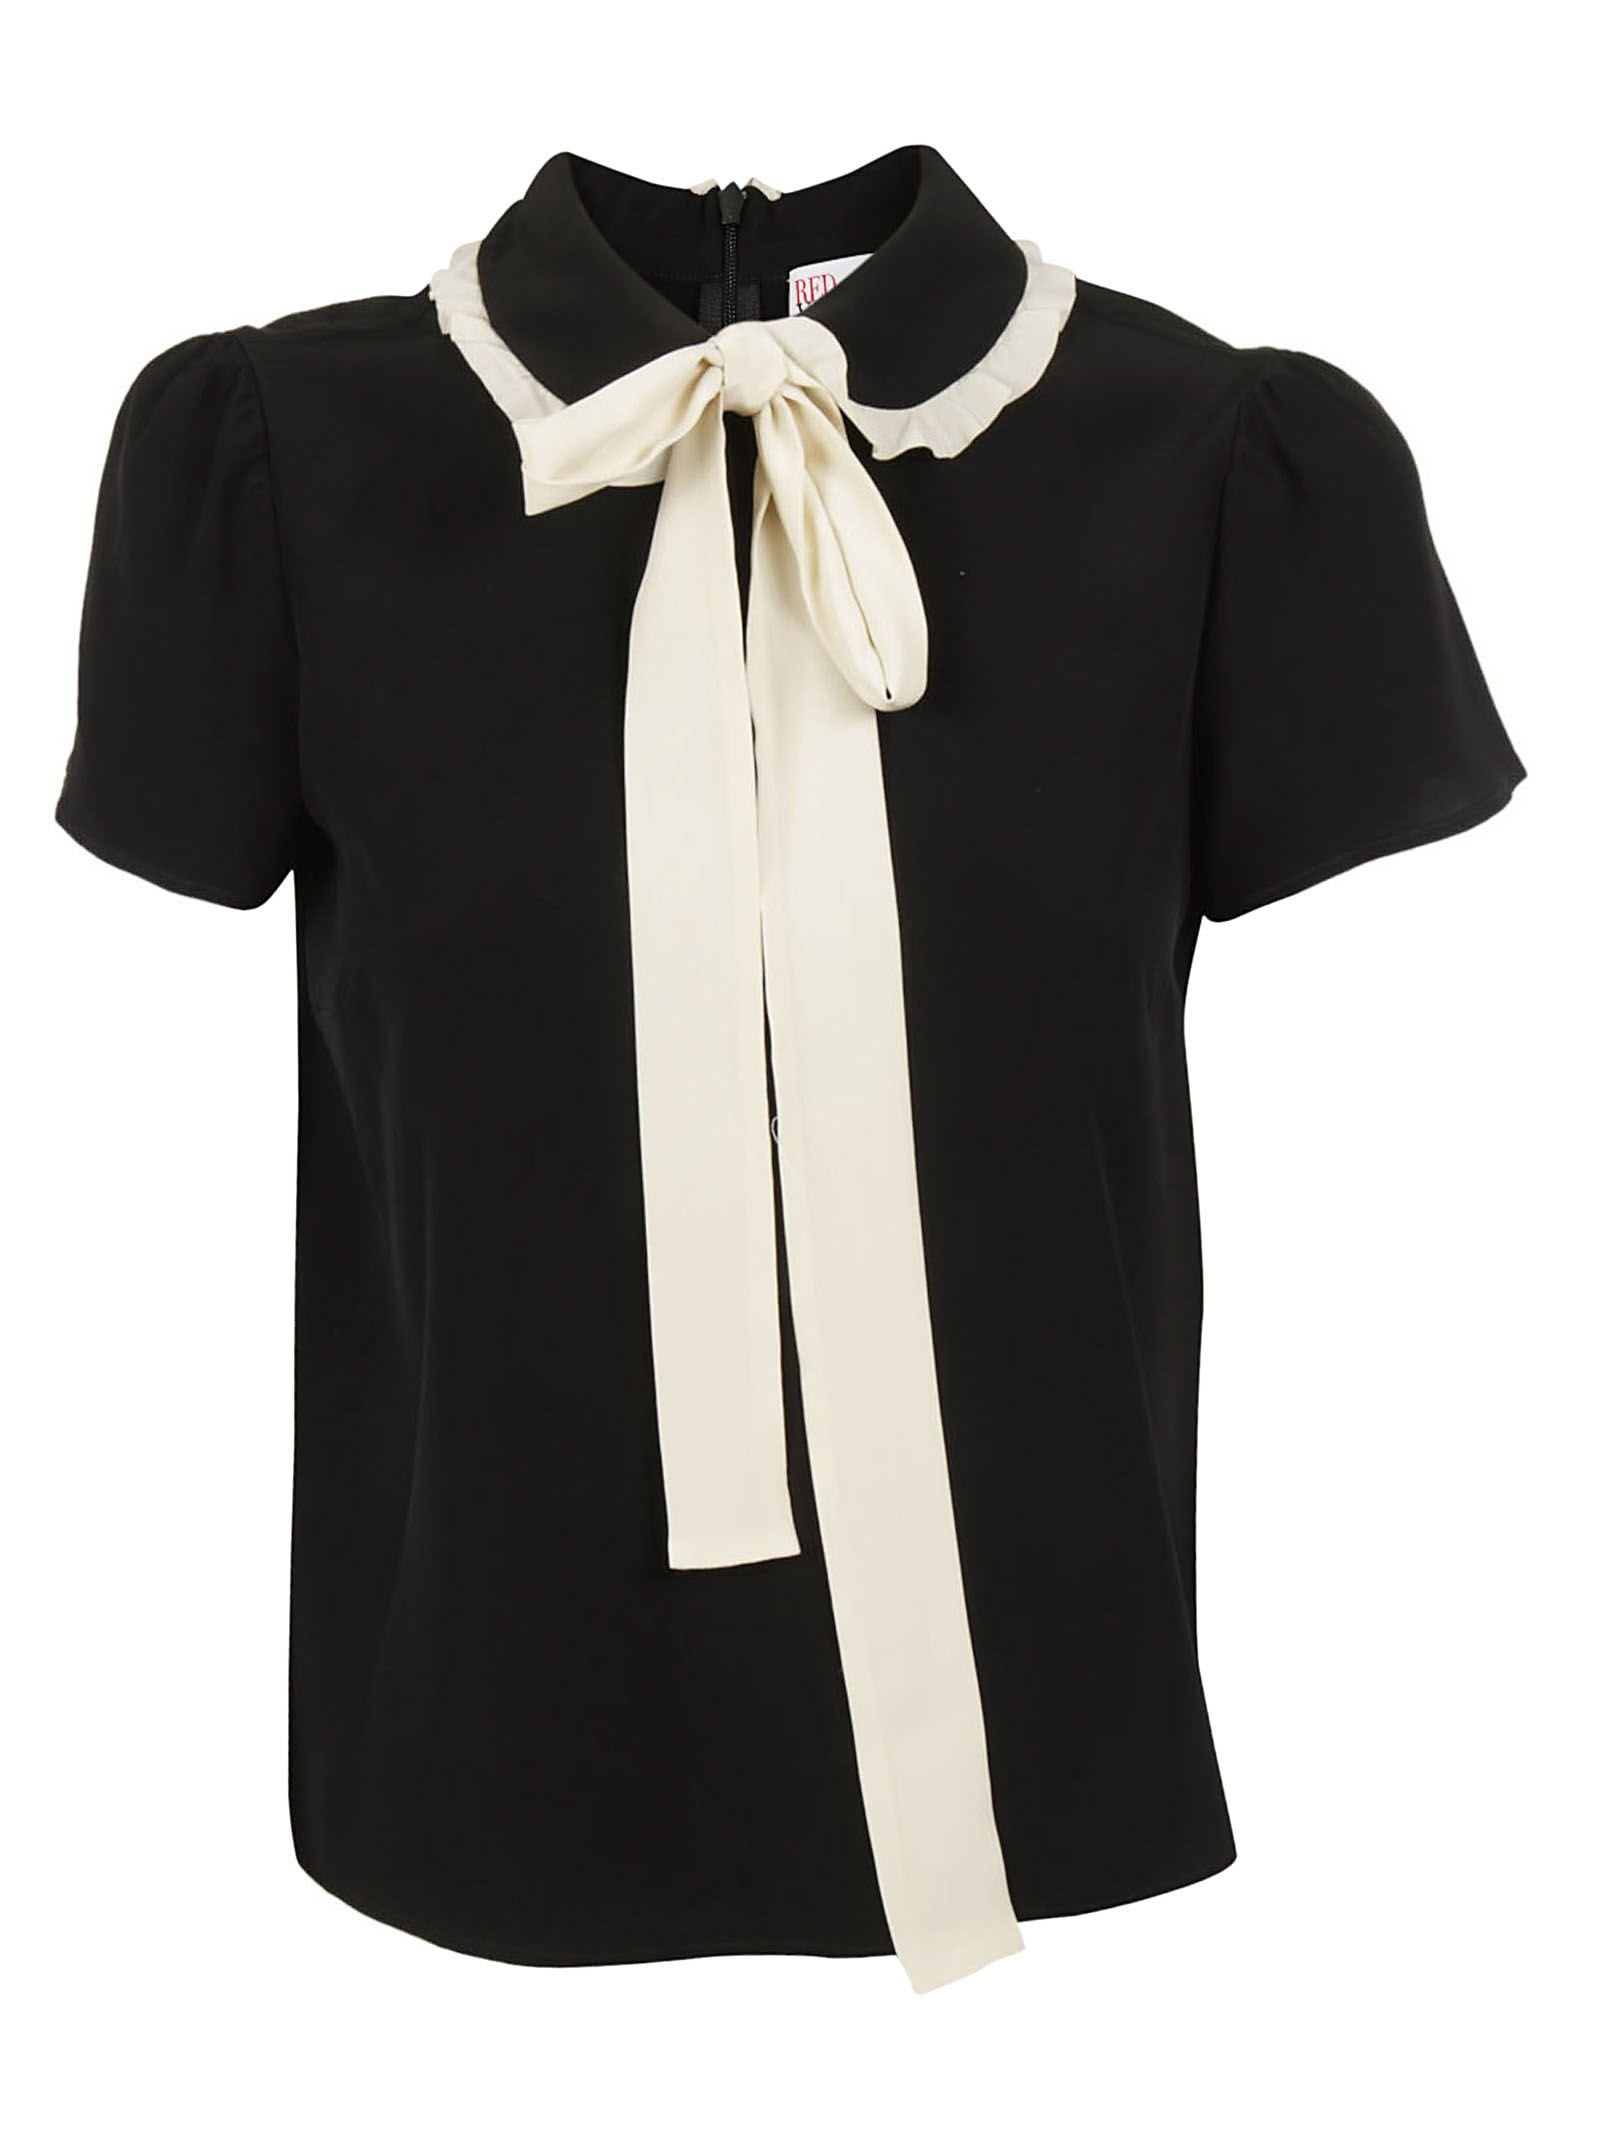 RED Valentino Red Valentino Bow Blouse